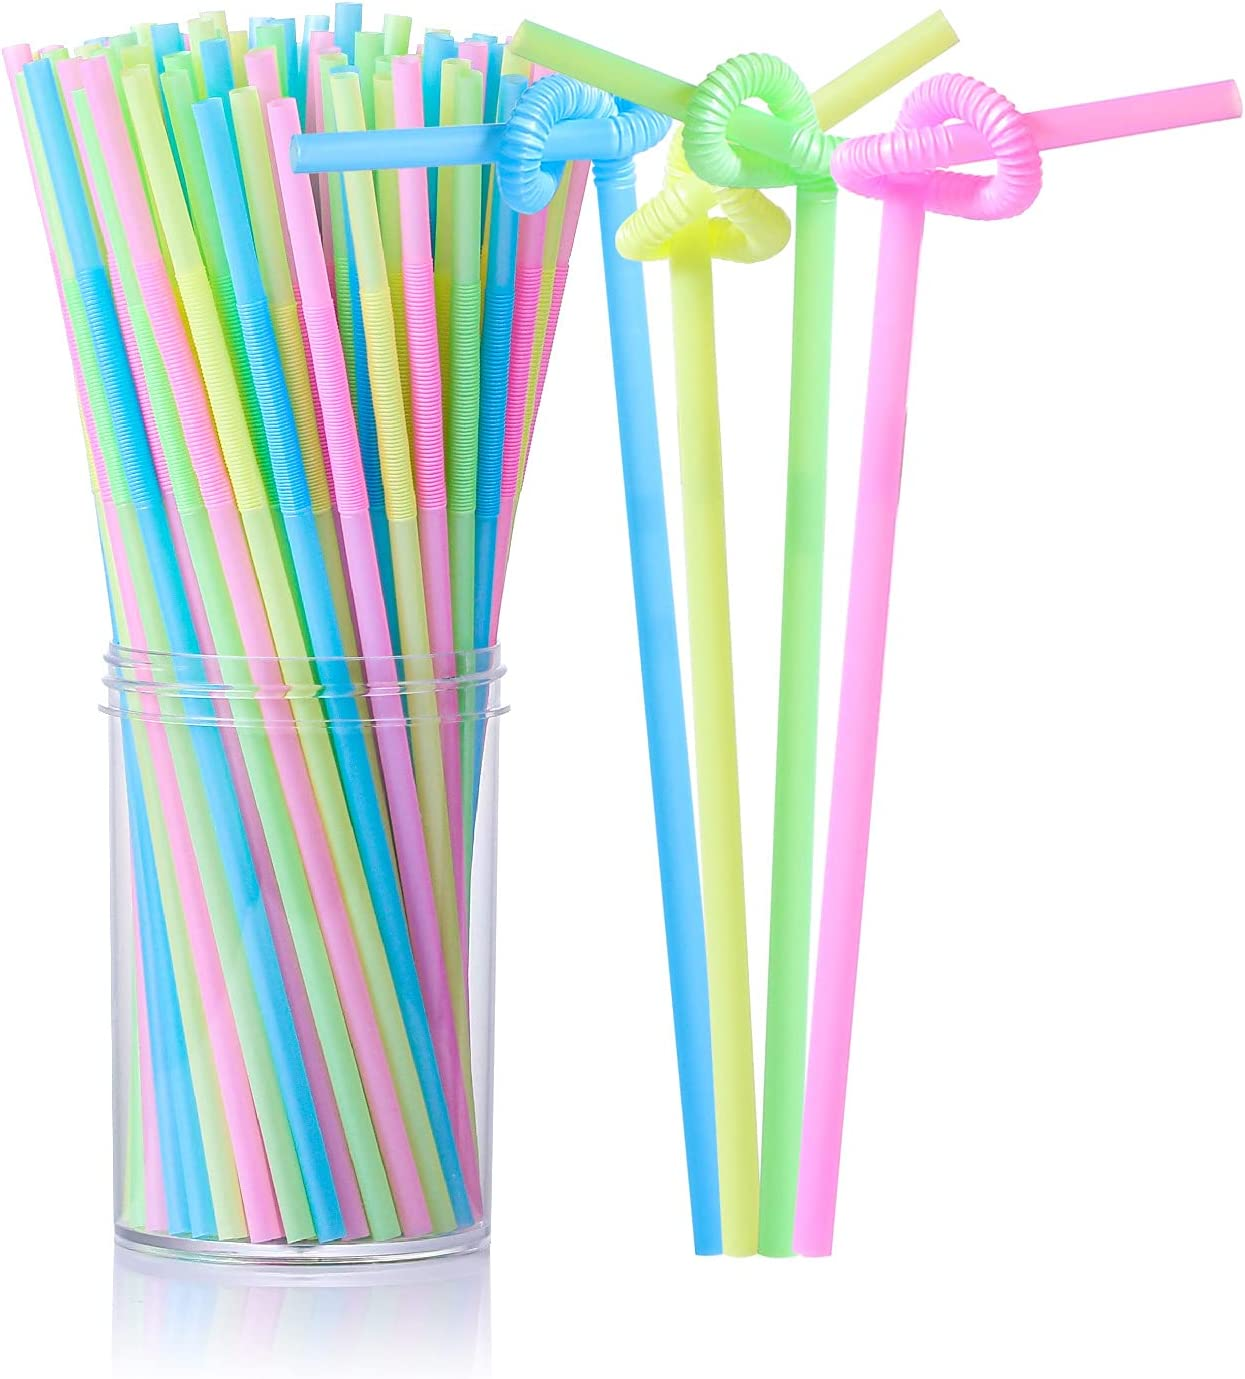 Lekoch Disposable Plastic Straws Alternative Popular product Clearance SALE Limited time 100 Pack Color Dis